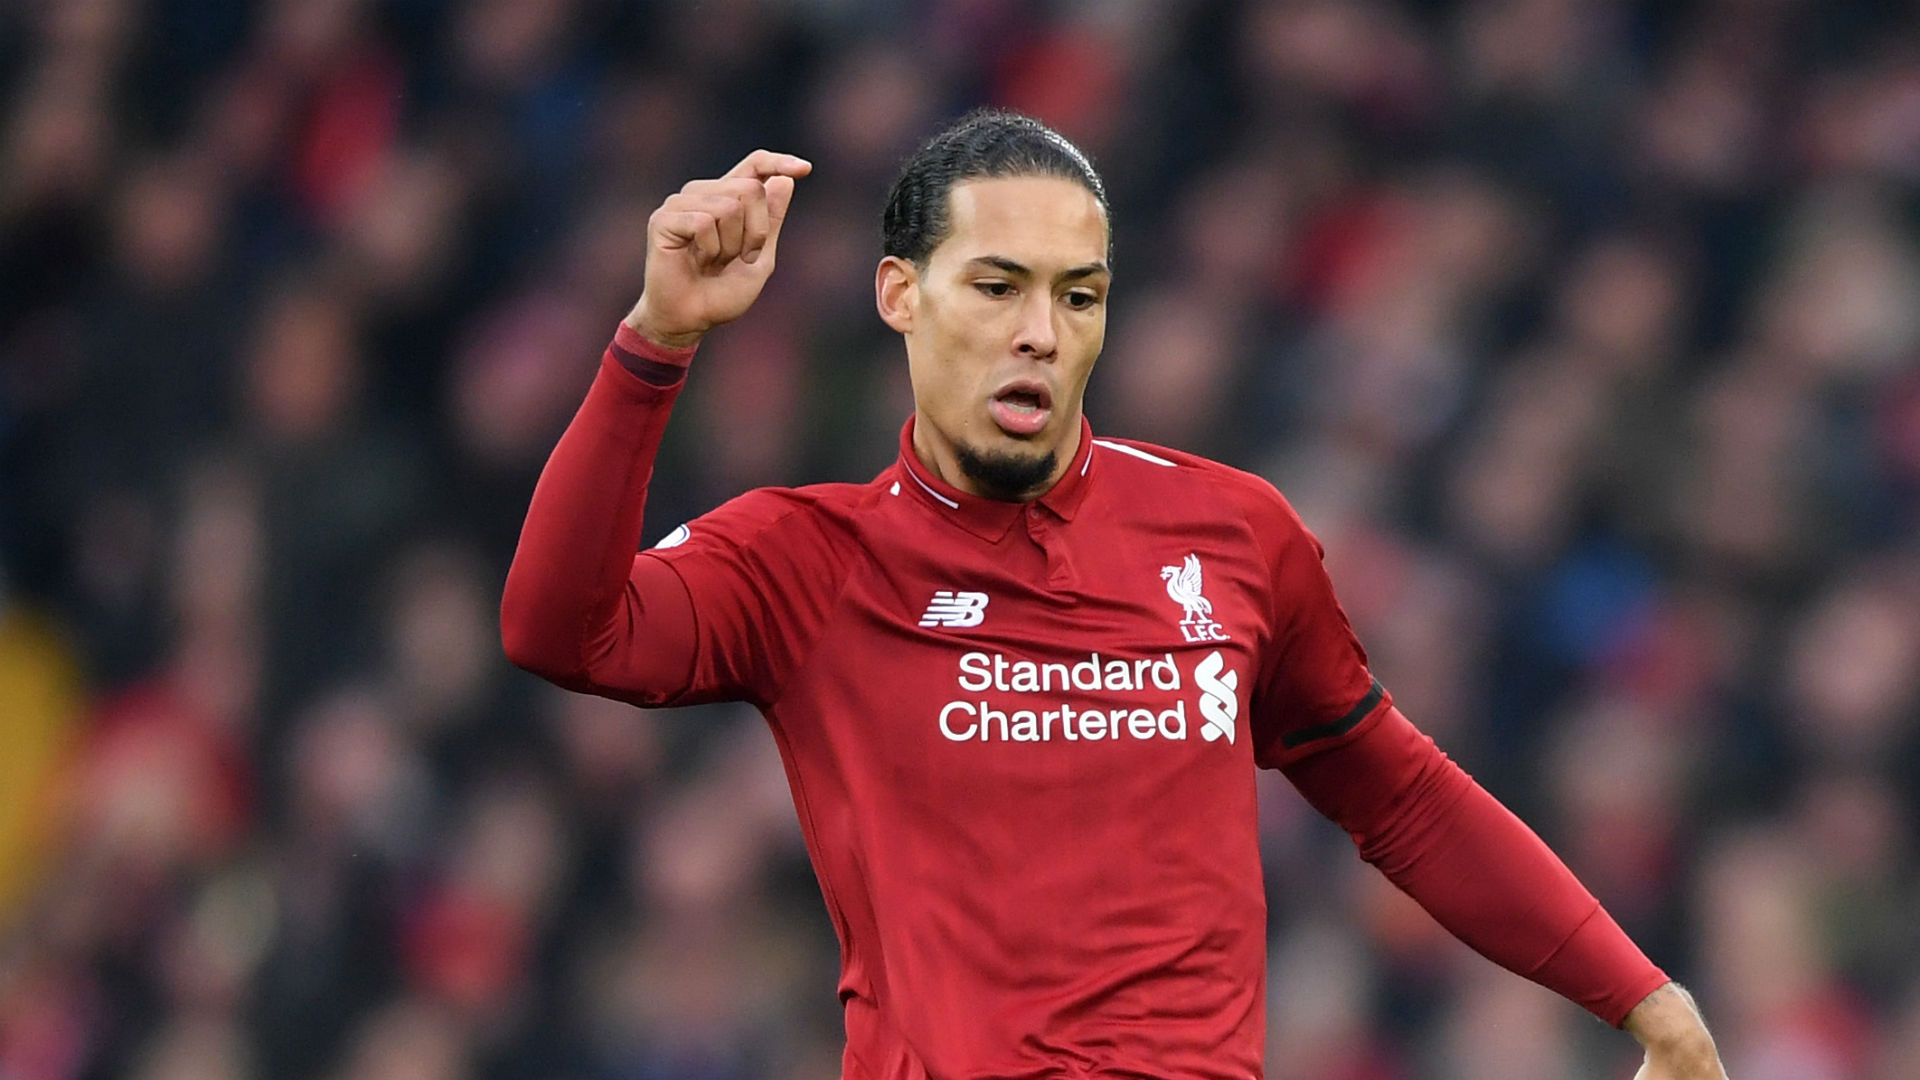 Liverpool News: Van Dijk 'does Have A Weakness' Claims